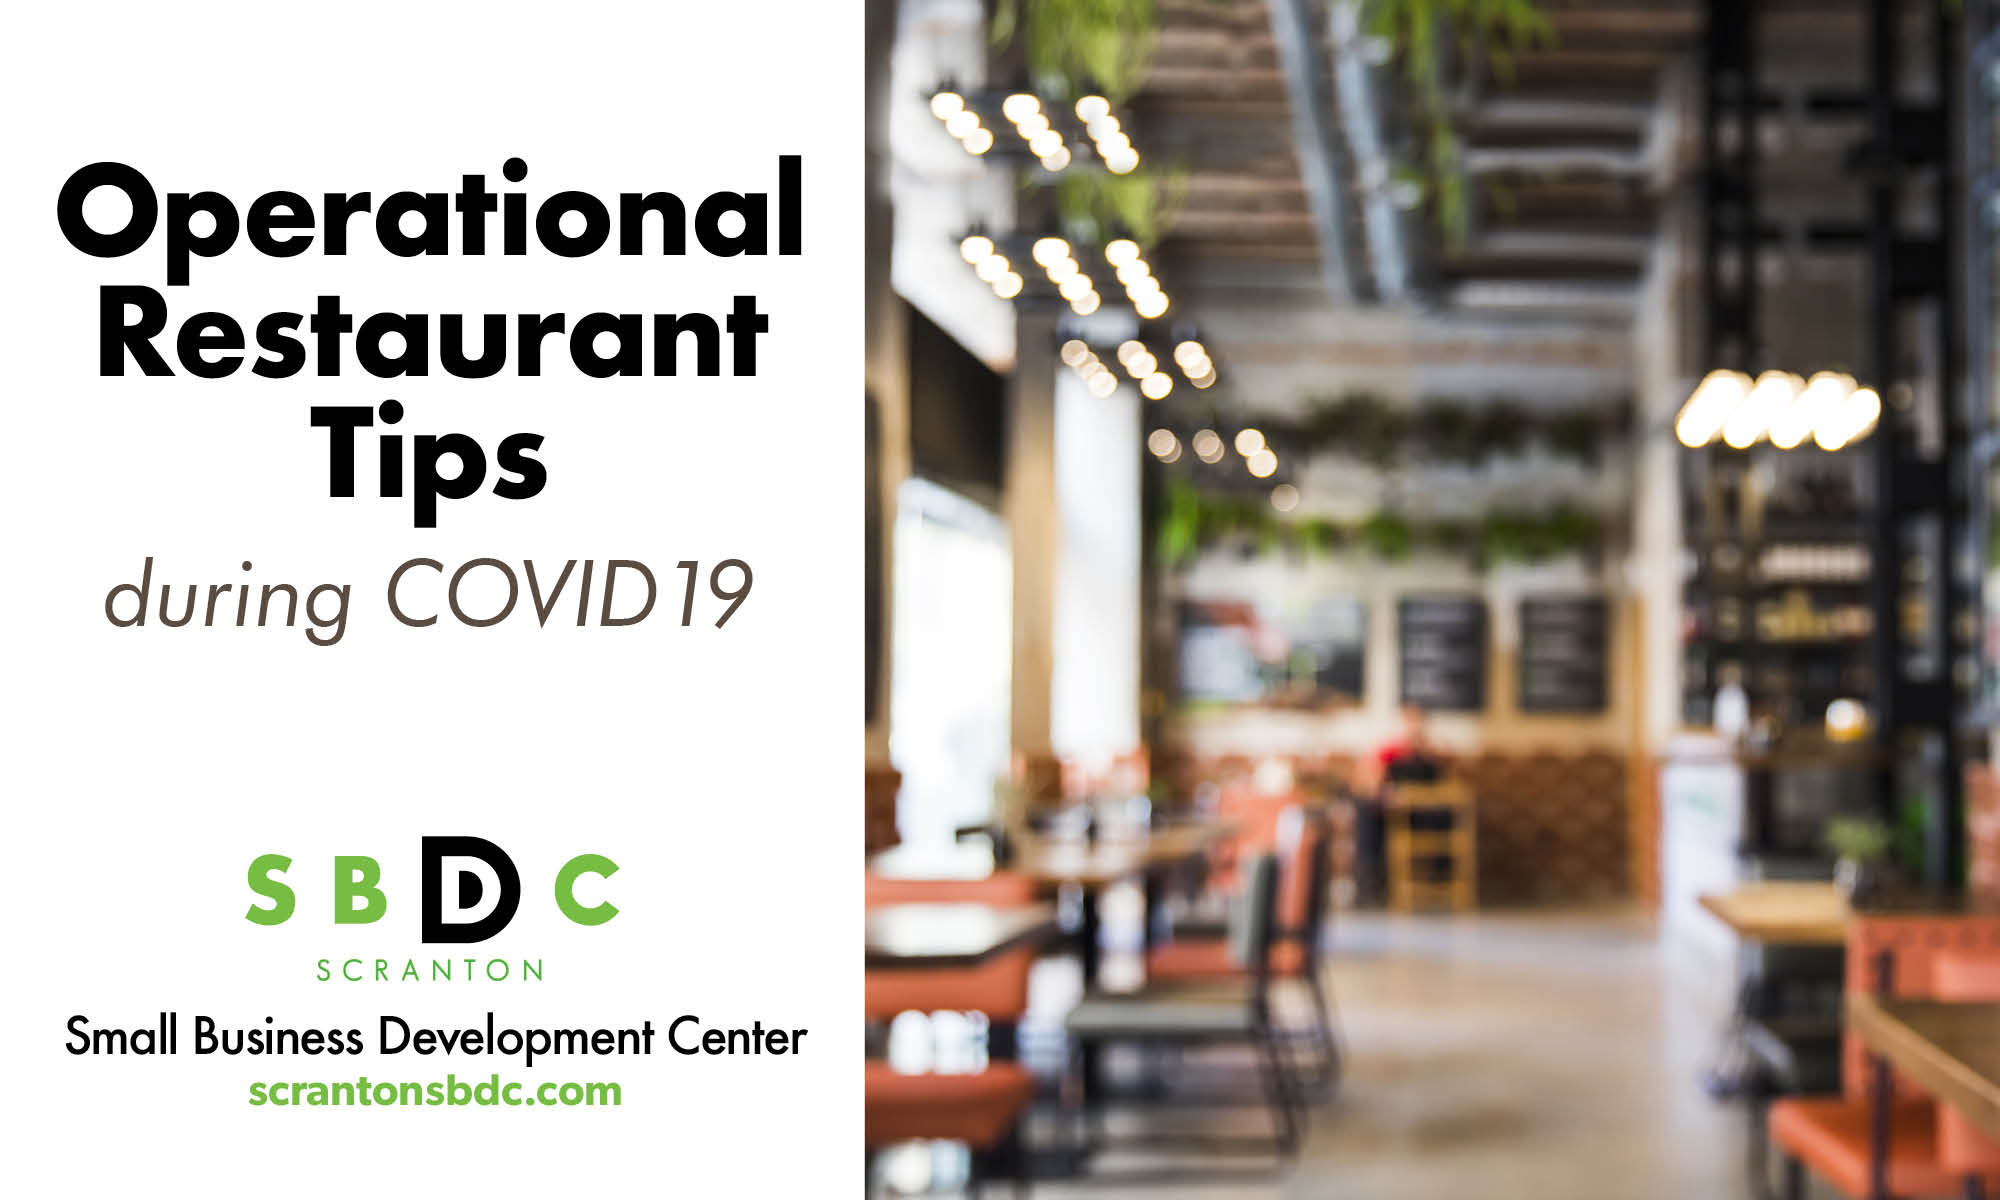 Operational Restaurant Tips during COVID19